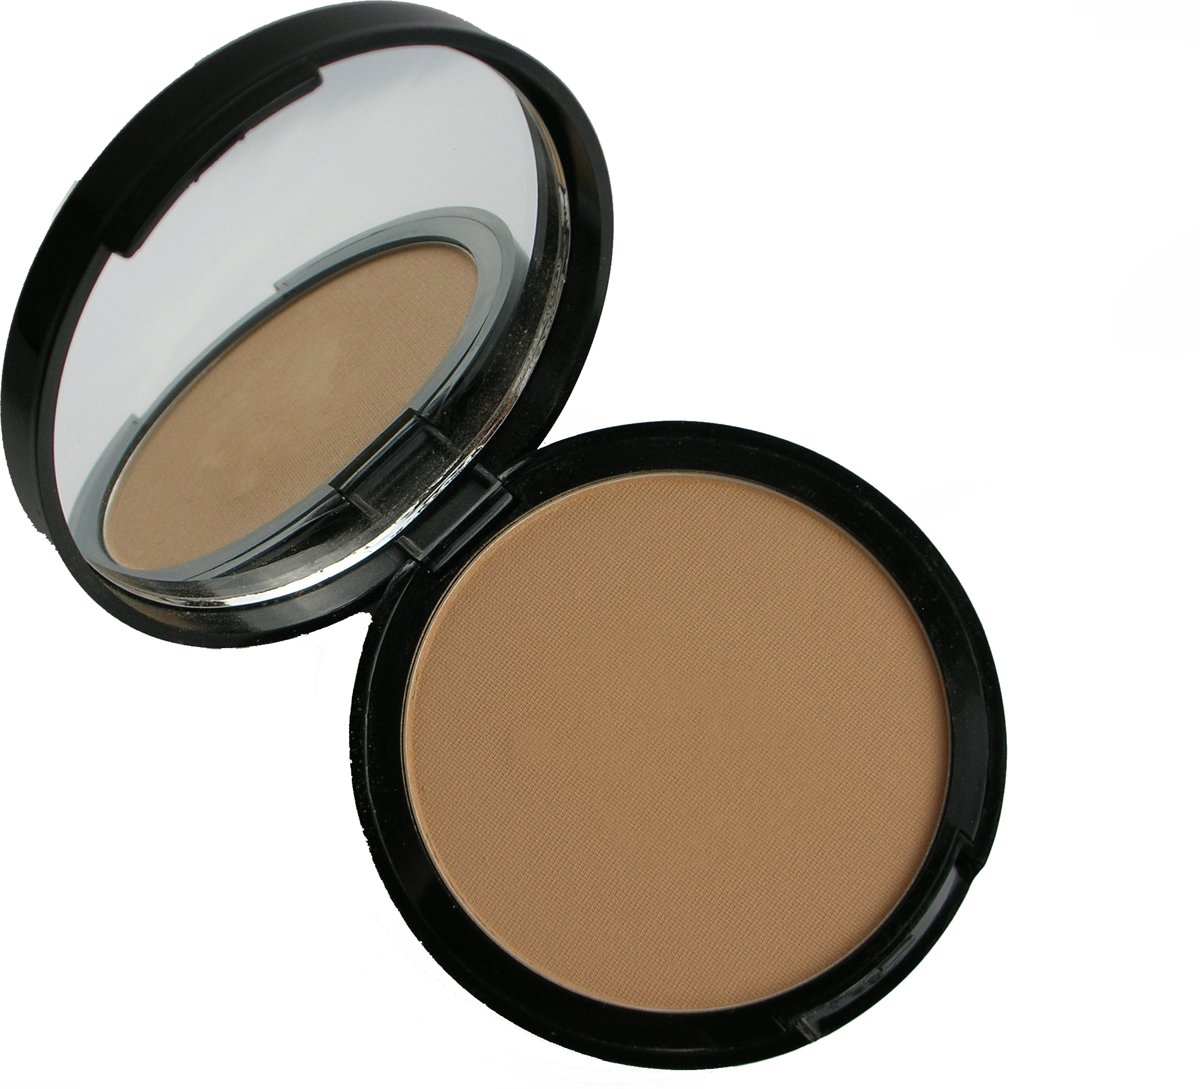 Ariane Inden Dual Active Powder Foundation - Almond Beige - Foundation